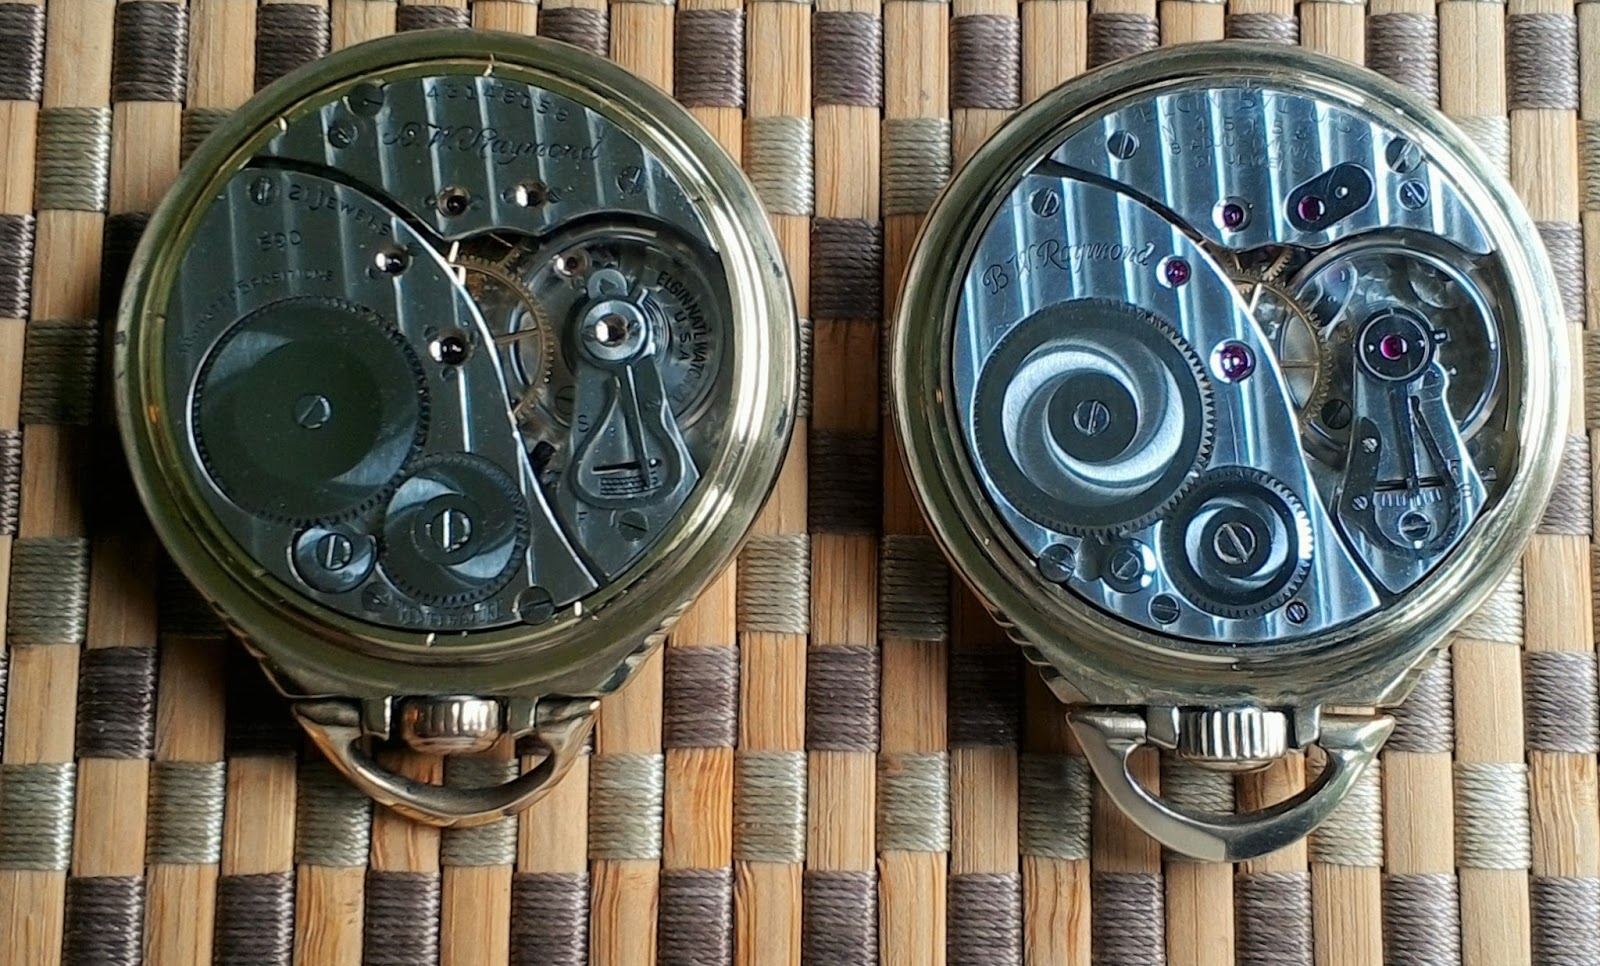 elgin watch serial number lookup